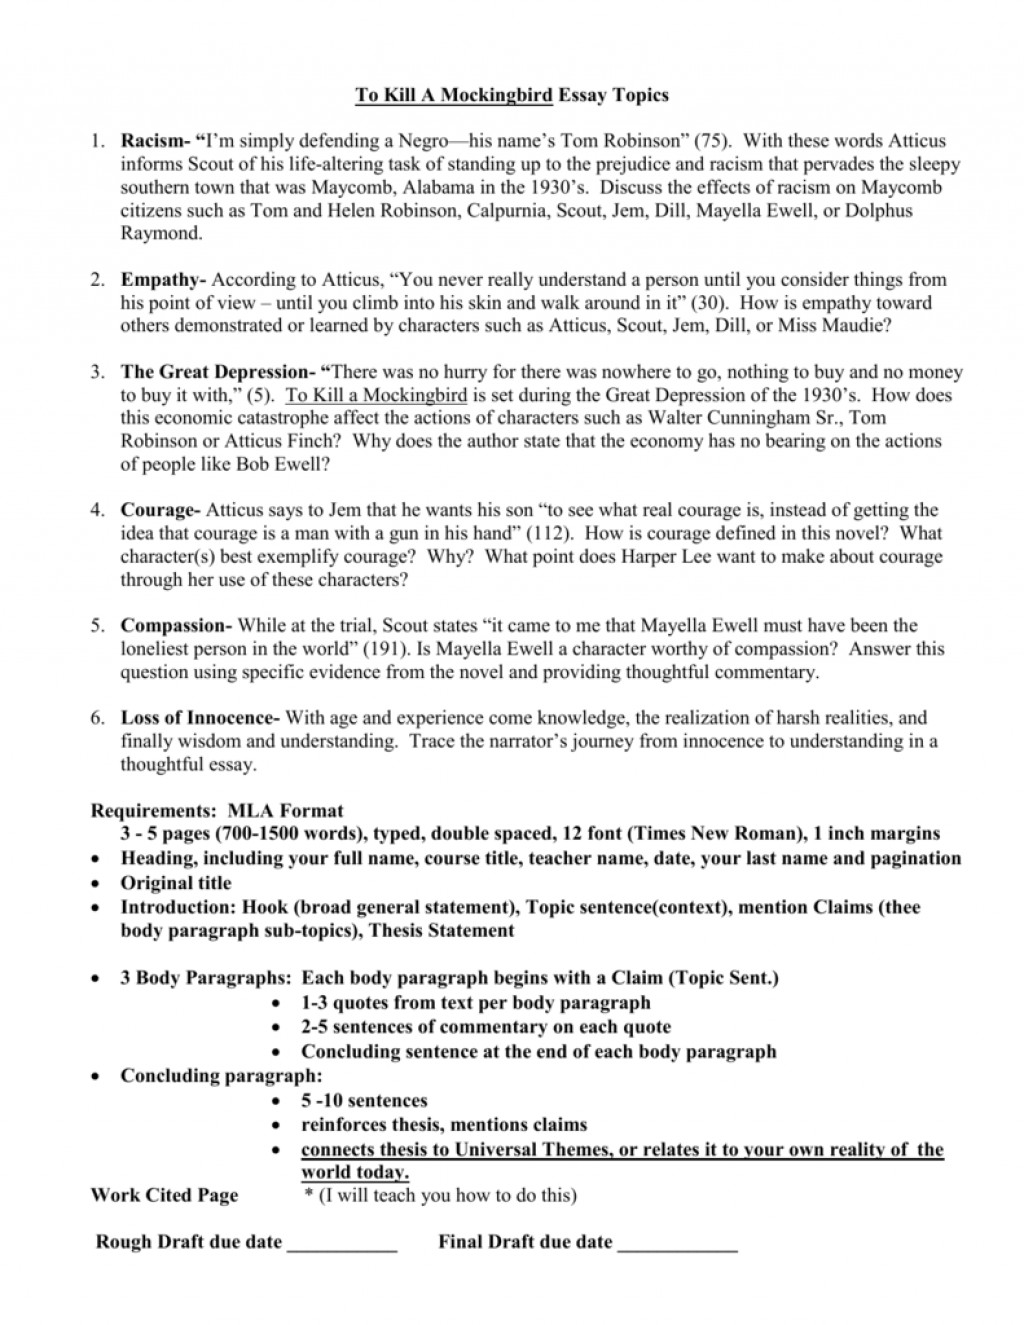 001 Essay Example 009245800 Questions For To Kill Mockingbird Part Impressive A 1 Discussion Chapter 16 14 15 Large